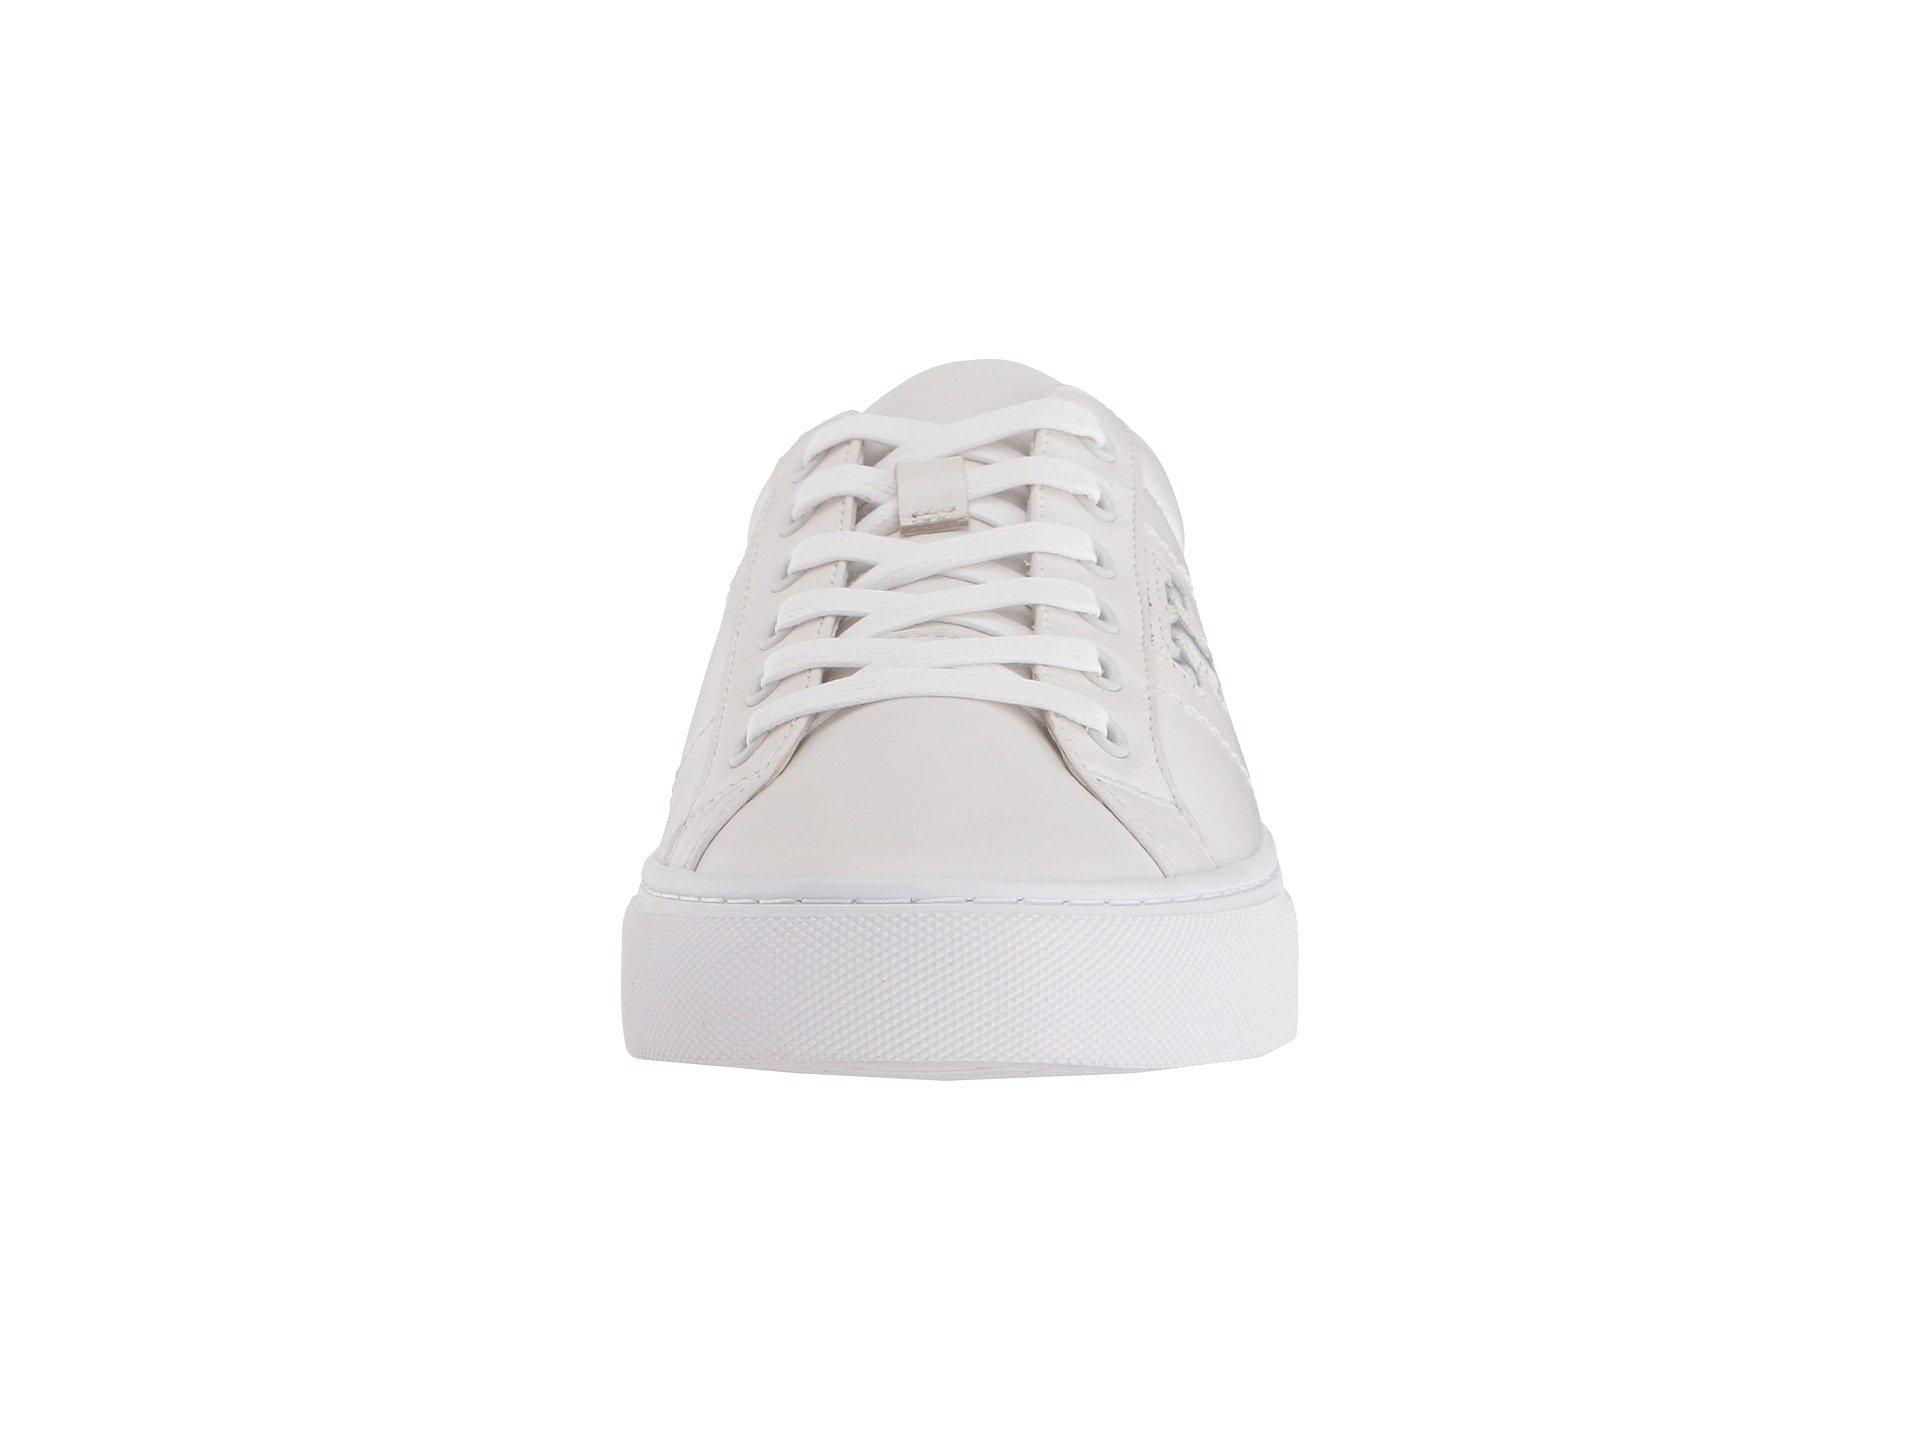 f8fdcb79723852 Lyst - Tory Burch Chace Lace-up Sneaker in White